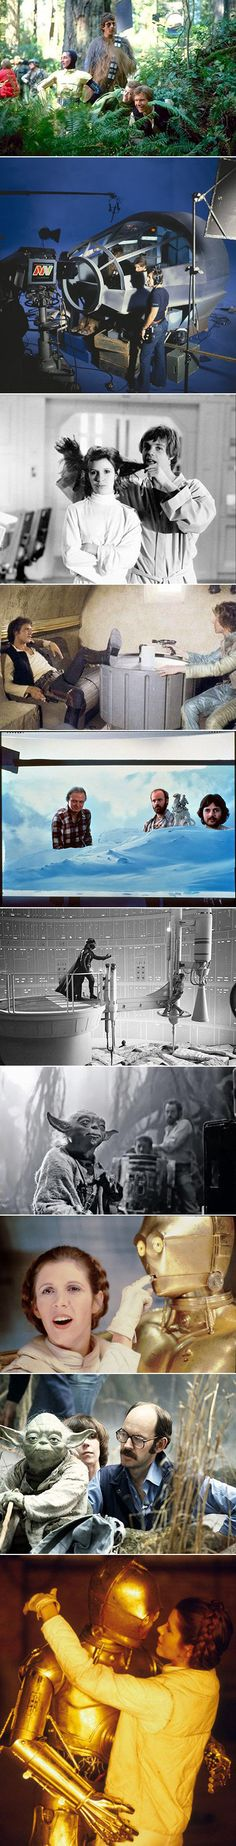 Here are some rarely seen, behind-the-scenes Star Wars photos.